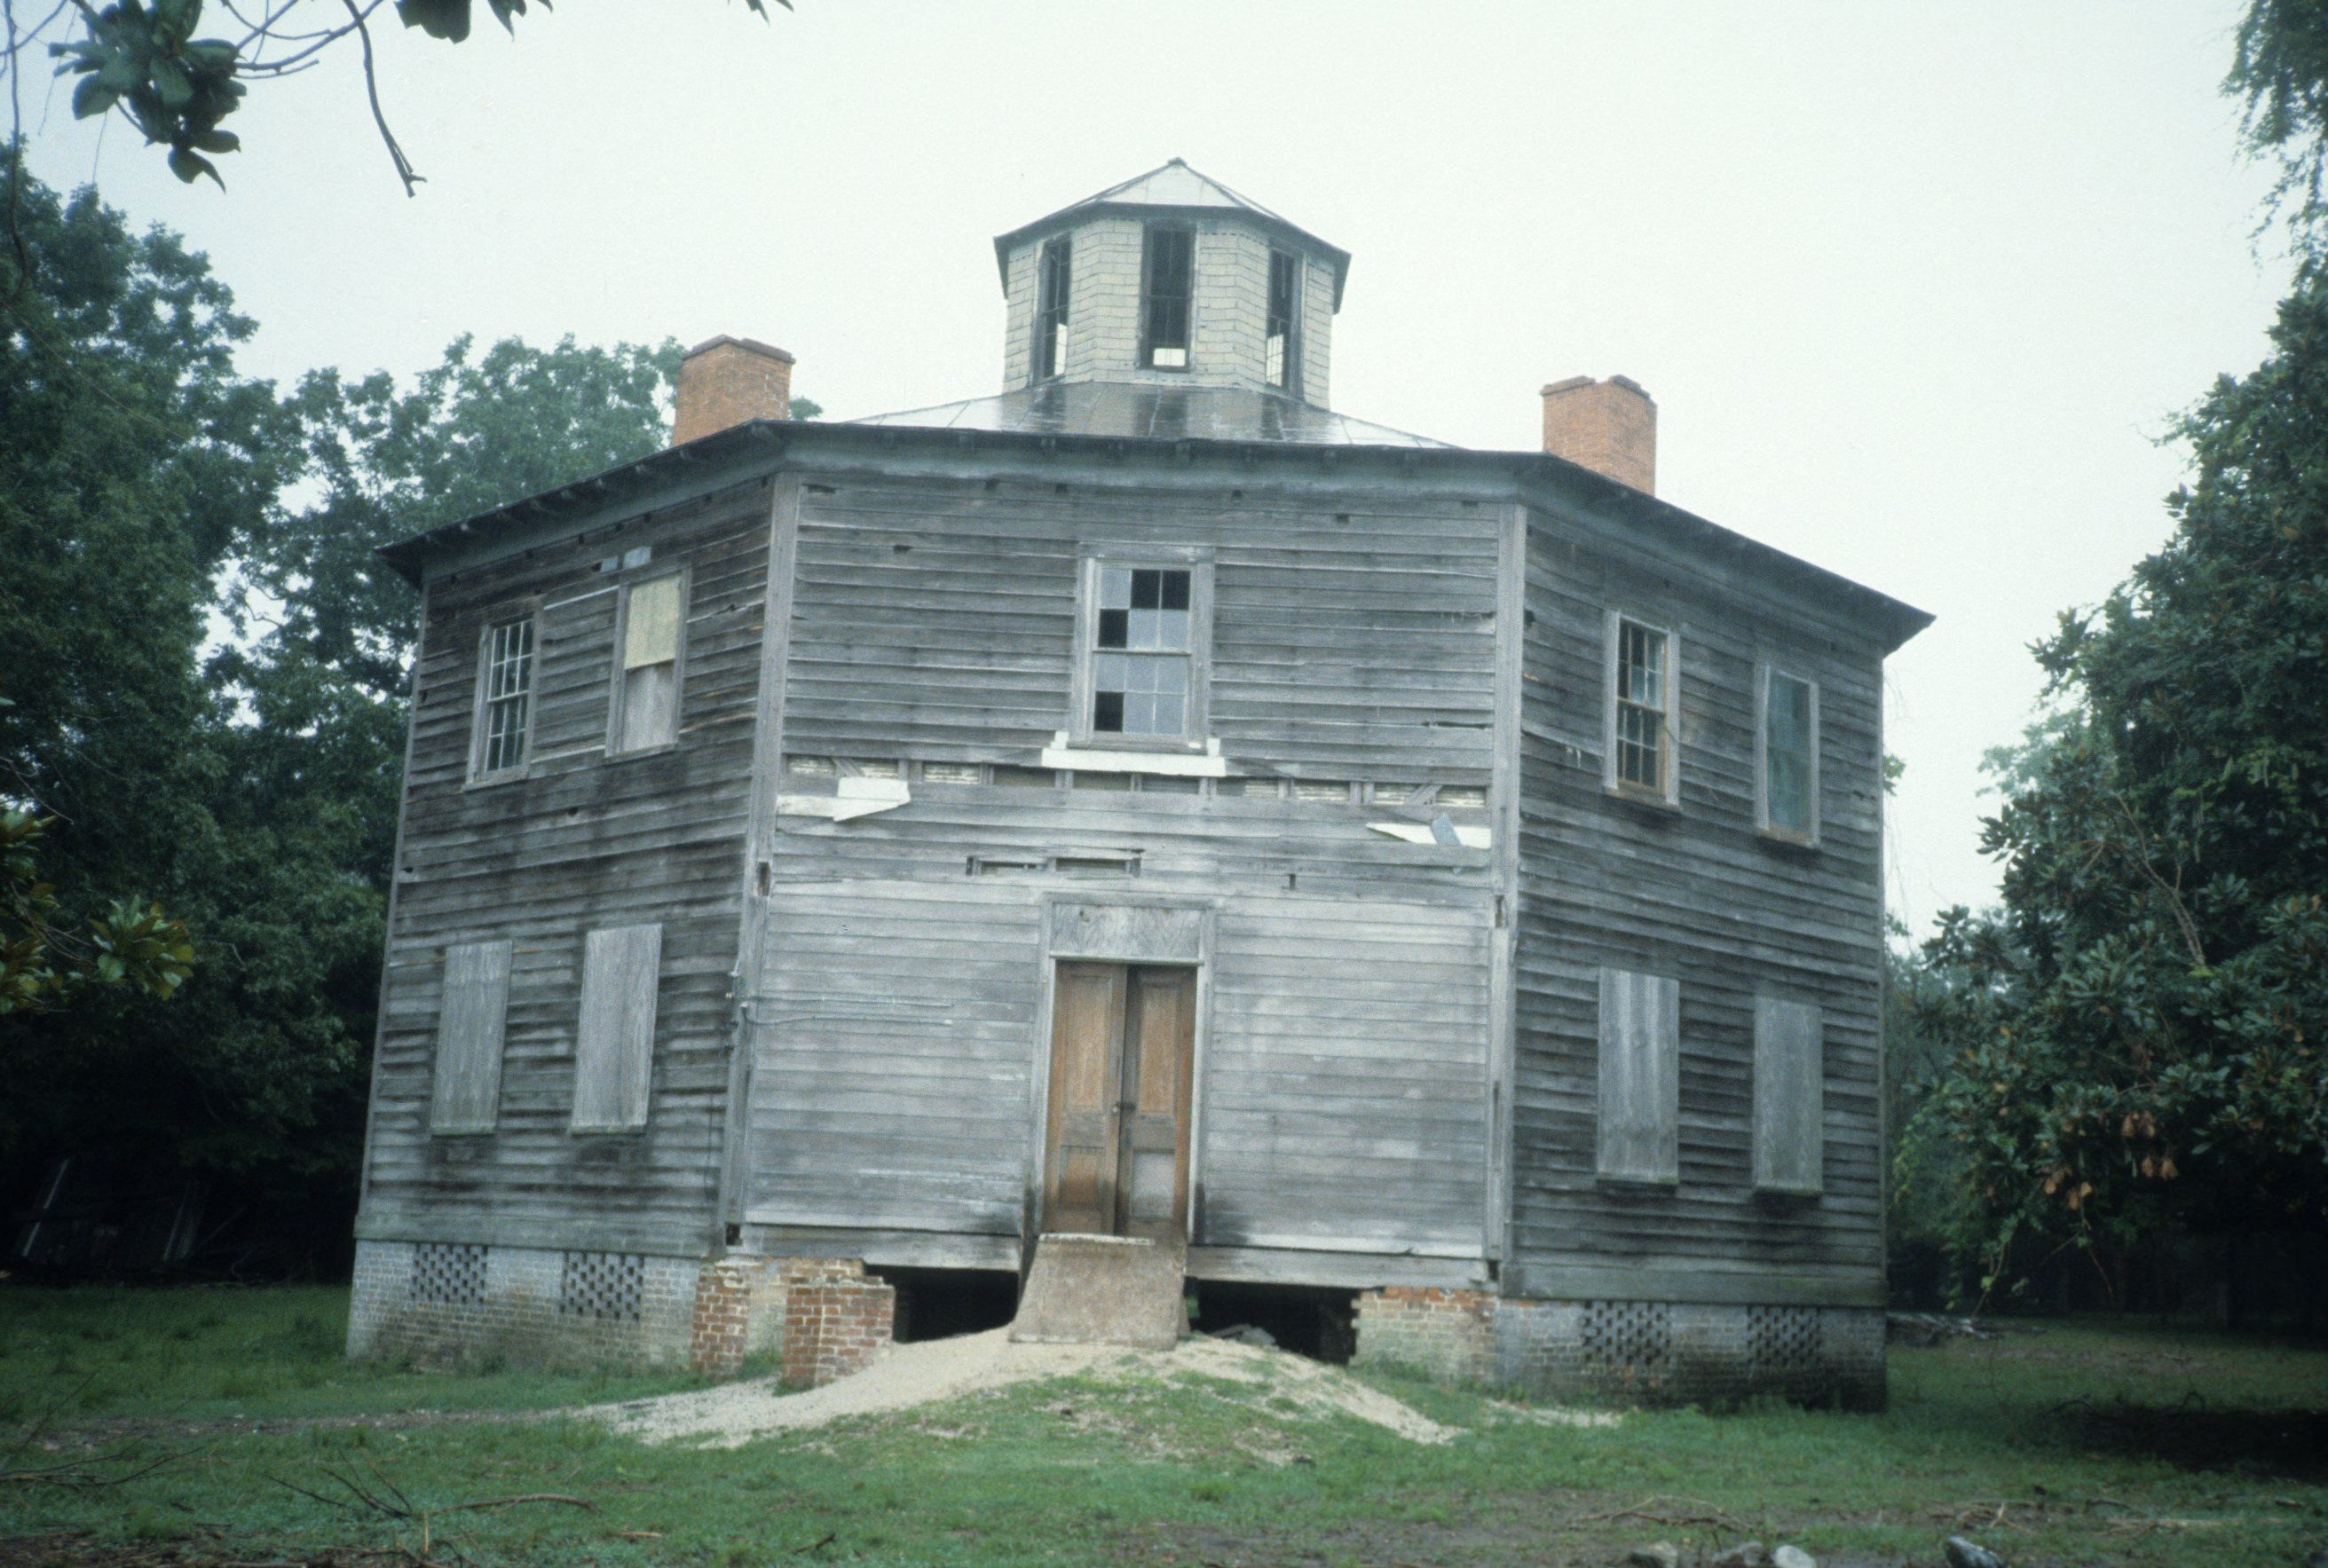 I Was Married Here It Has Been Beautifully Restored Front View Octagon House Carteret County North C Old Abandoned Houses Octagon House Abandoned Houses